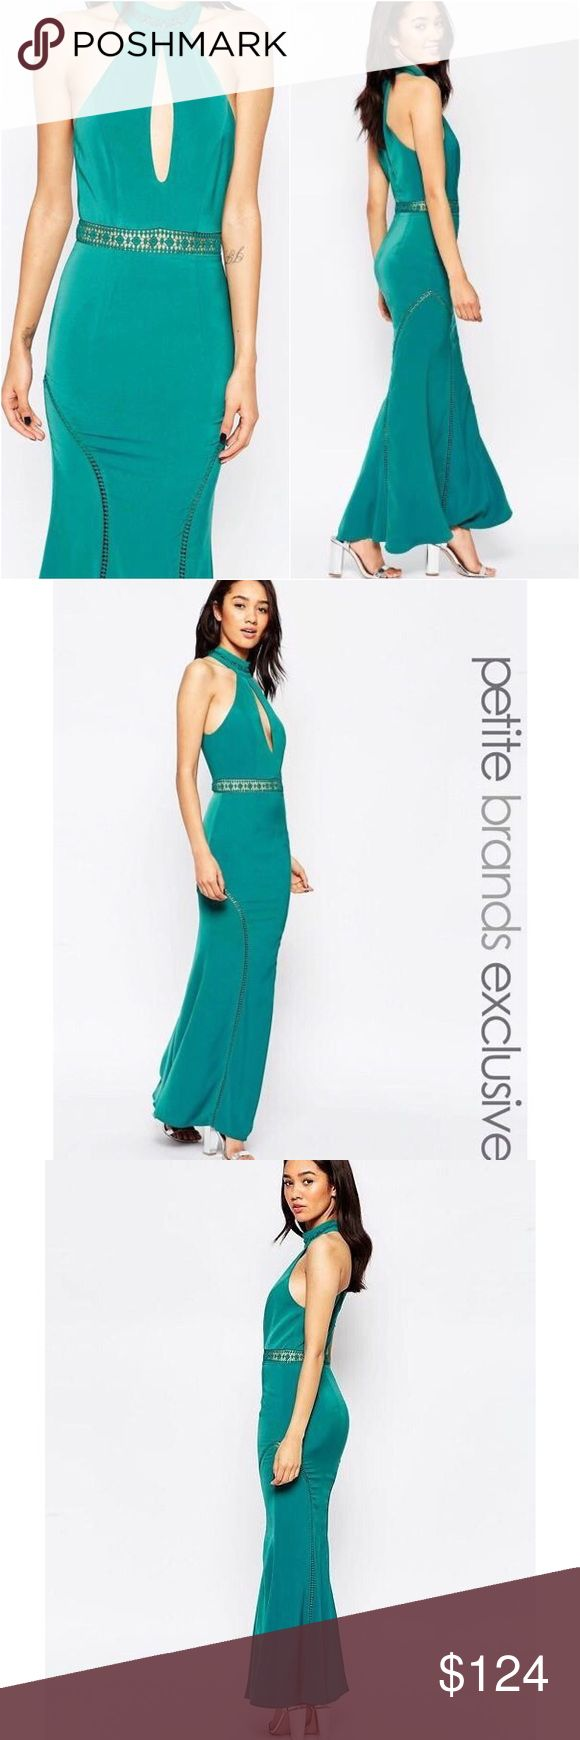 🆕 JARLO by ASOS Mermaid Hem Keyhole Dress 2 Beautiful mermaid hem formal dress by JARLO (ASOS) in mermaid green! Keyhole front. A great pick for prom at a fraction of the cost! New with tags. Size 2. ASOS Dresses Prom